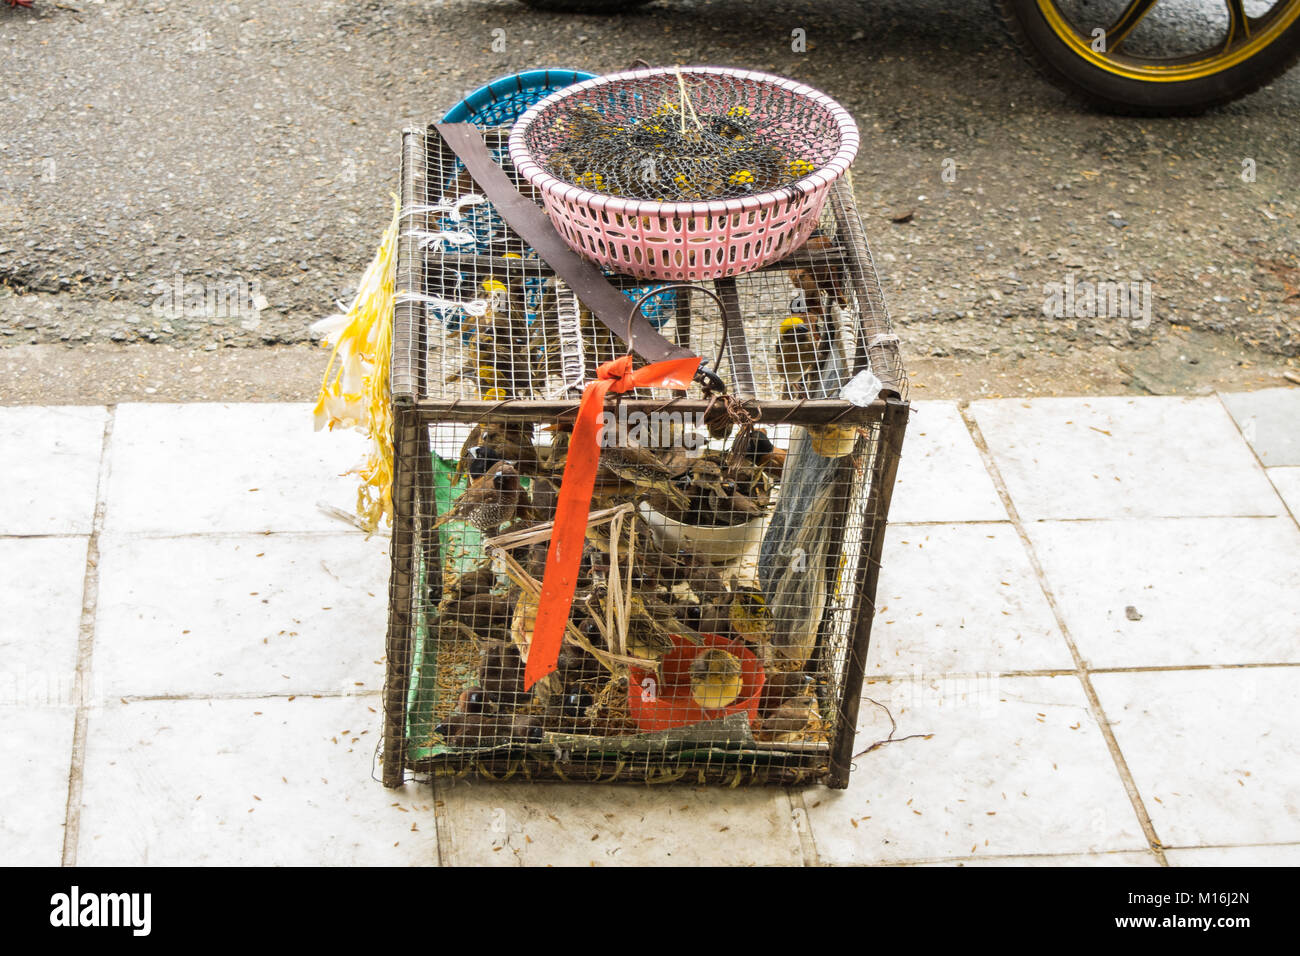 A cage and container full of merit or luck birds, waiting to be released outside a Buddhist pagoda in Yangon, Myanmar. - Stock Image